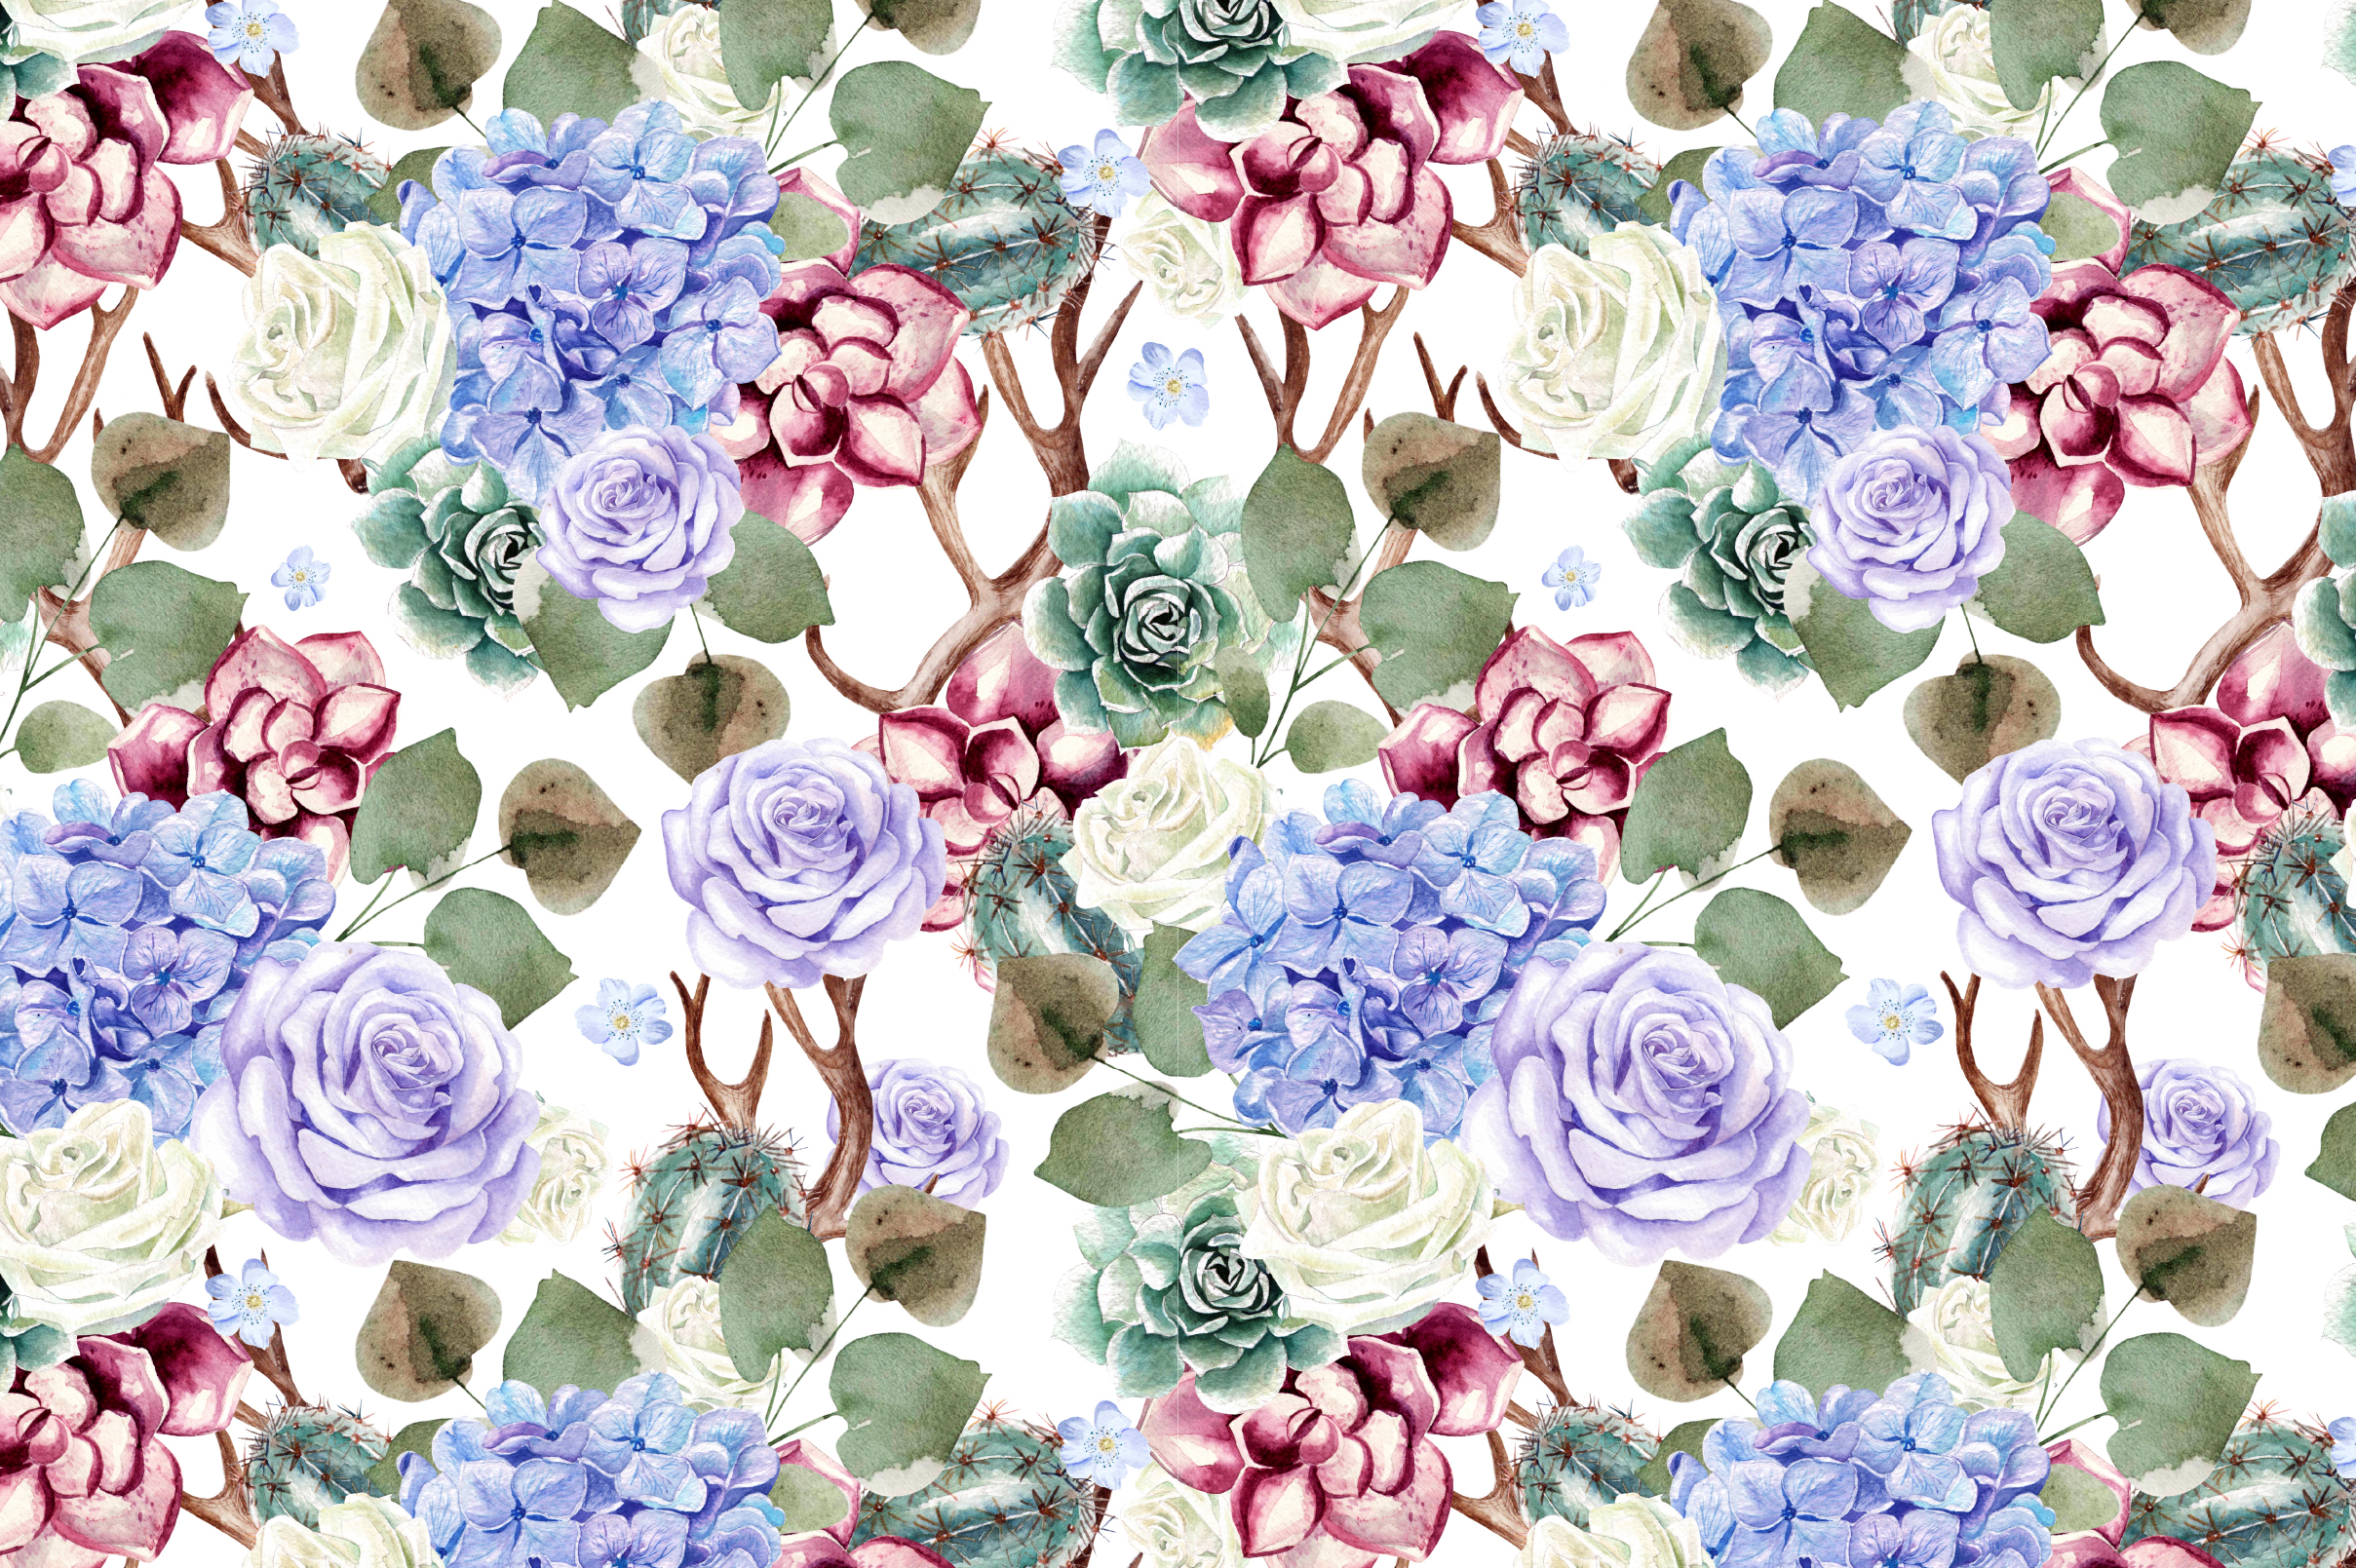 14 Hand drawn watercolor patterns example image 11